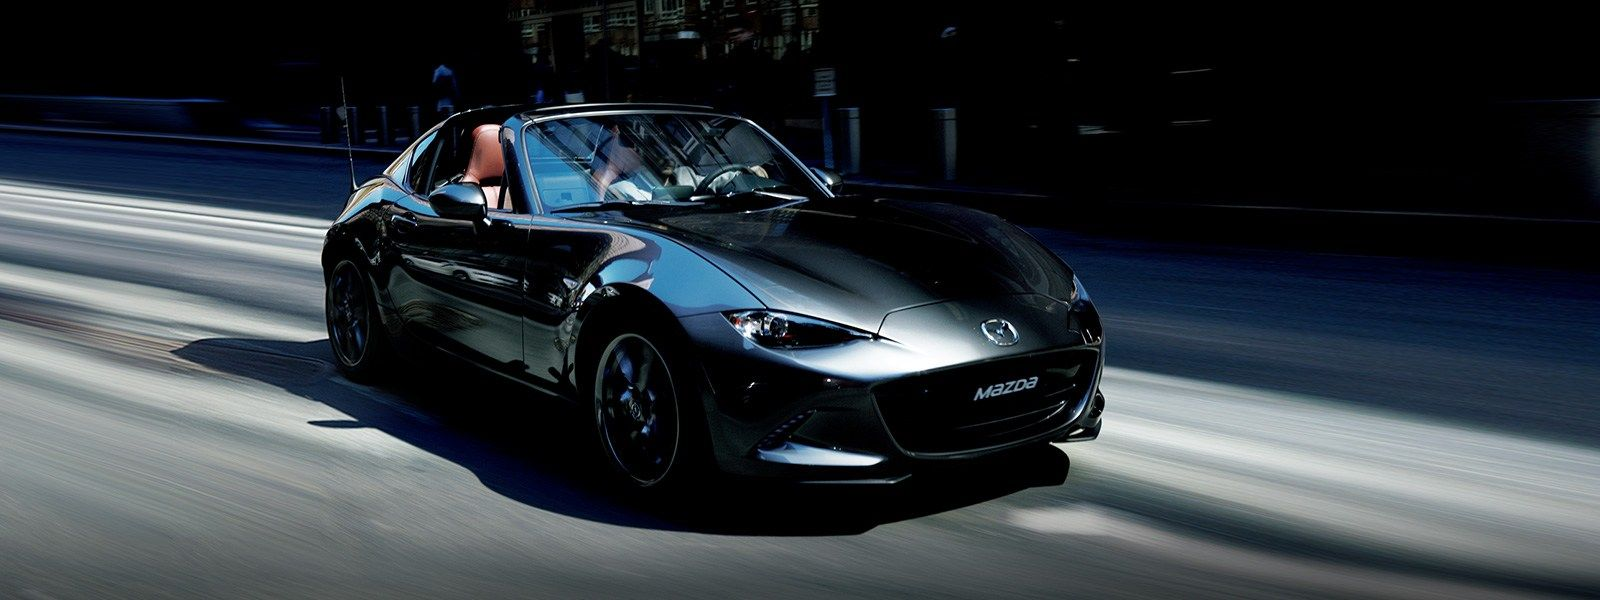 The 2019 Mazda MX5 Miata To Come With More Power And